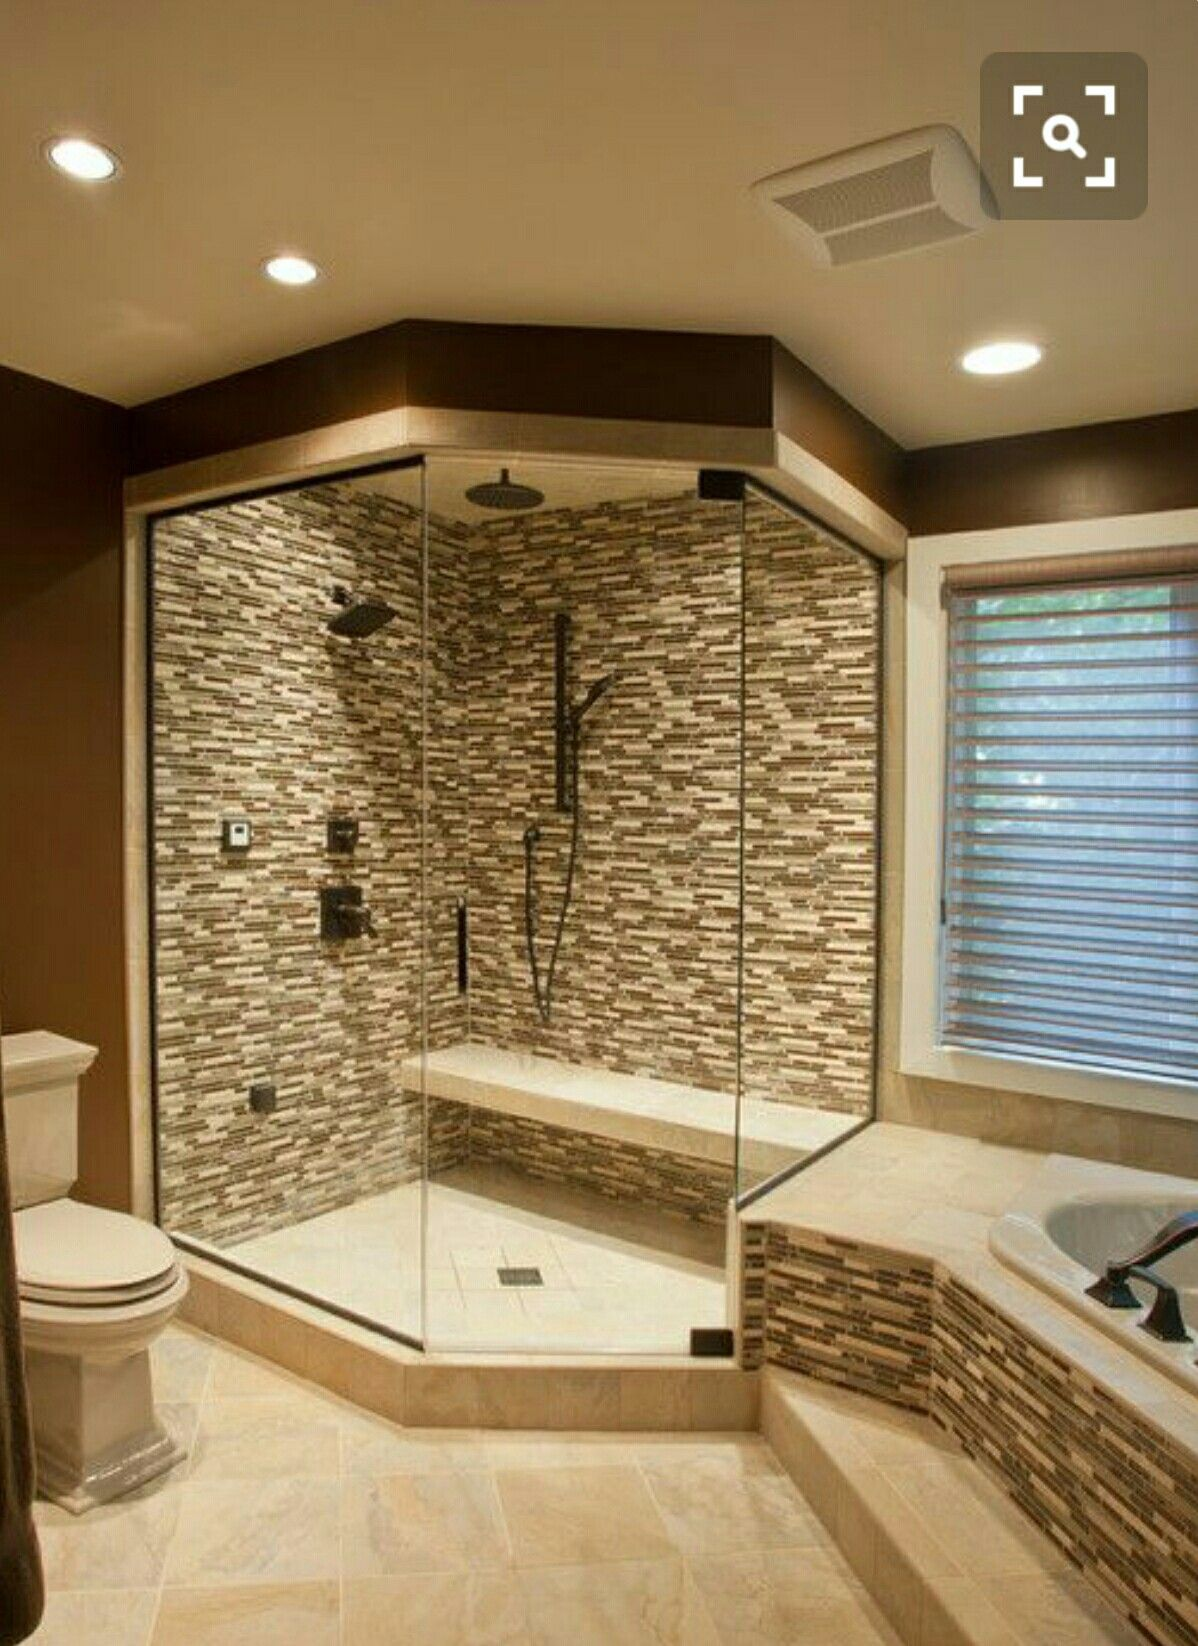 Rocked out tub new house Pinterest